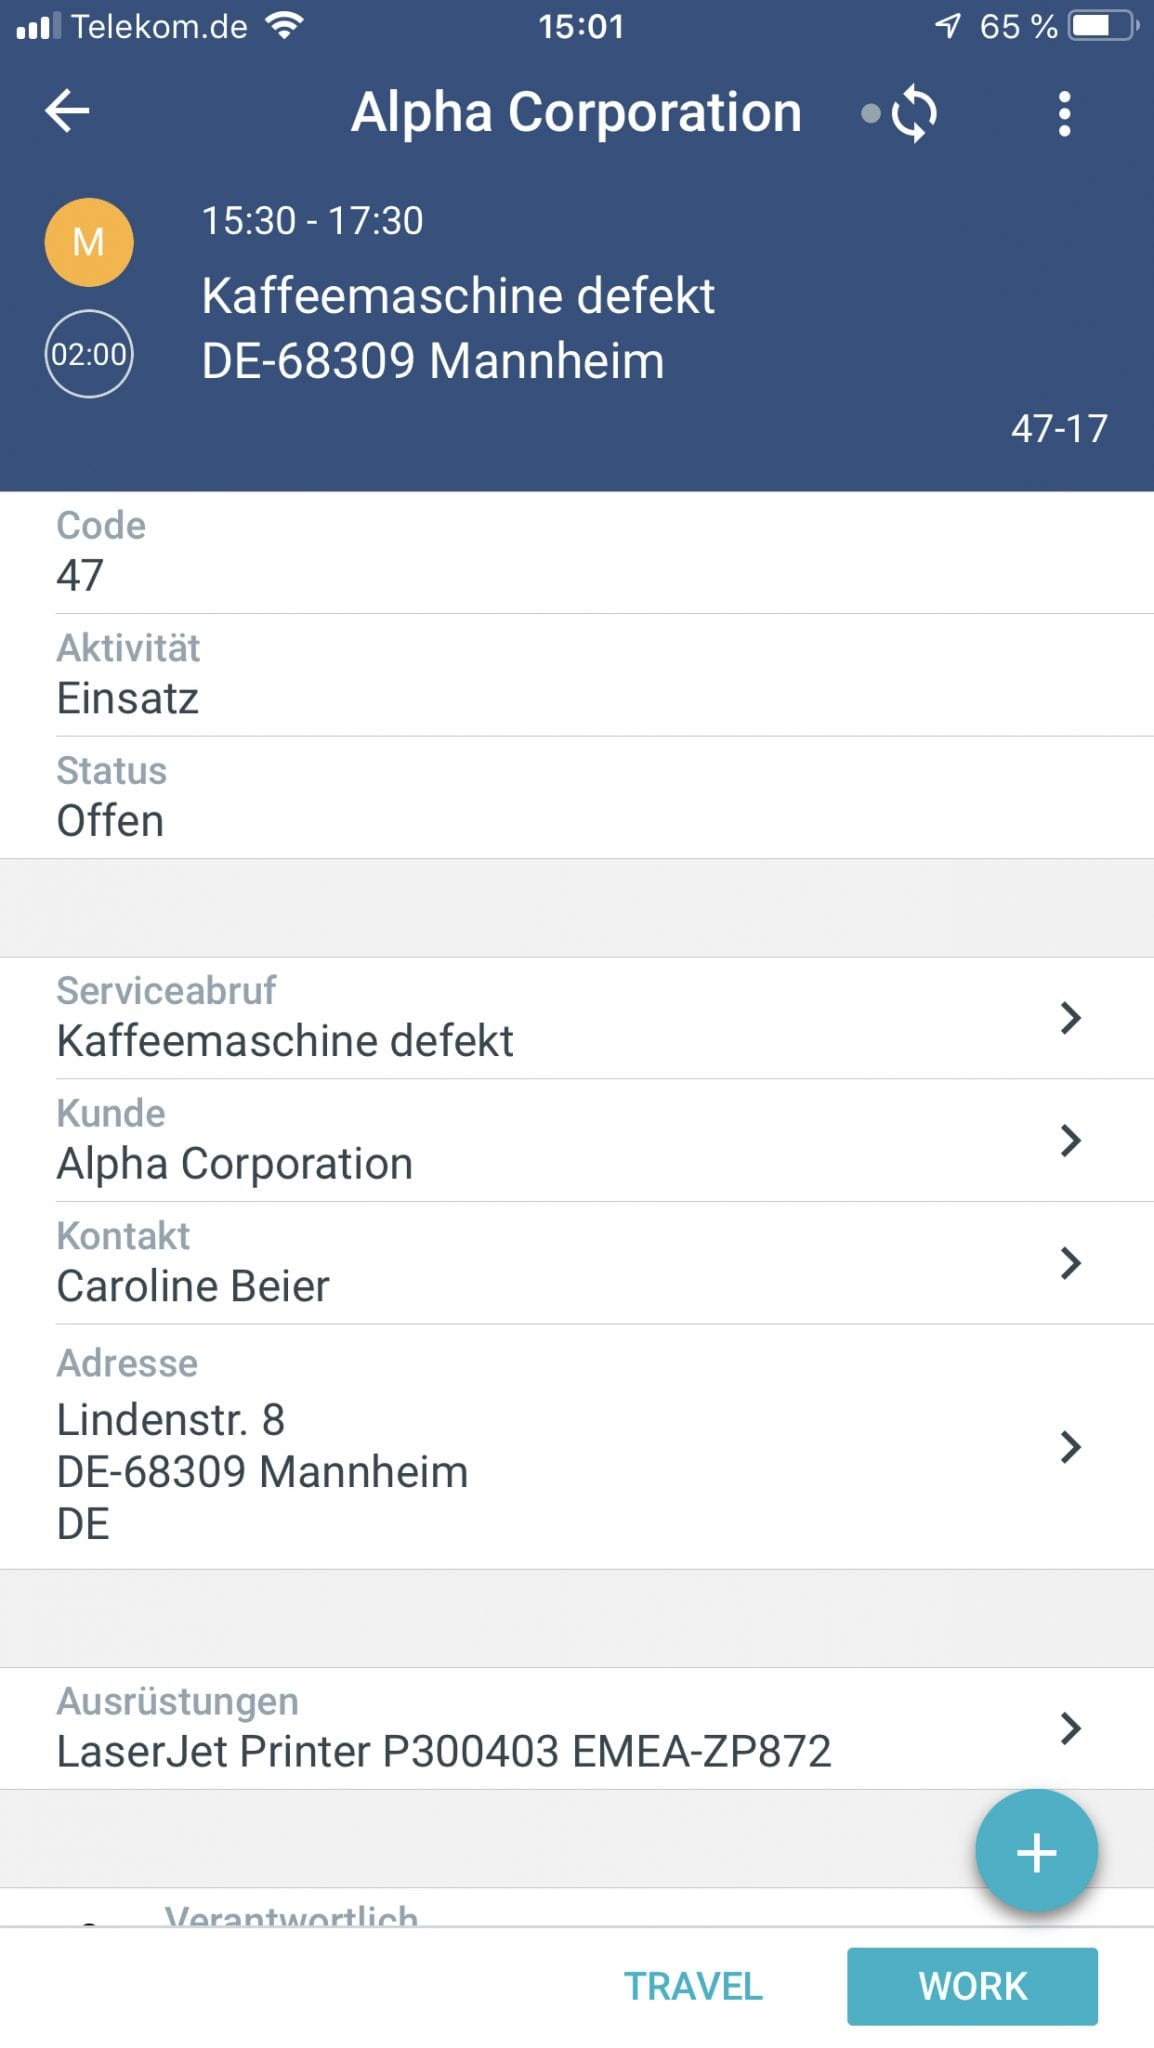 SAP Field Service Management Mobile App